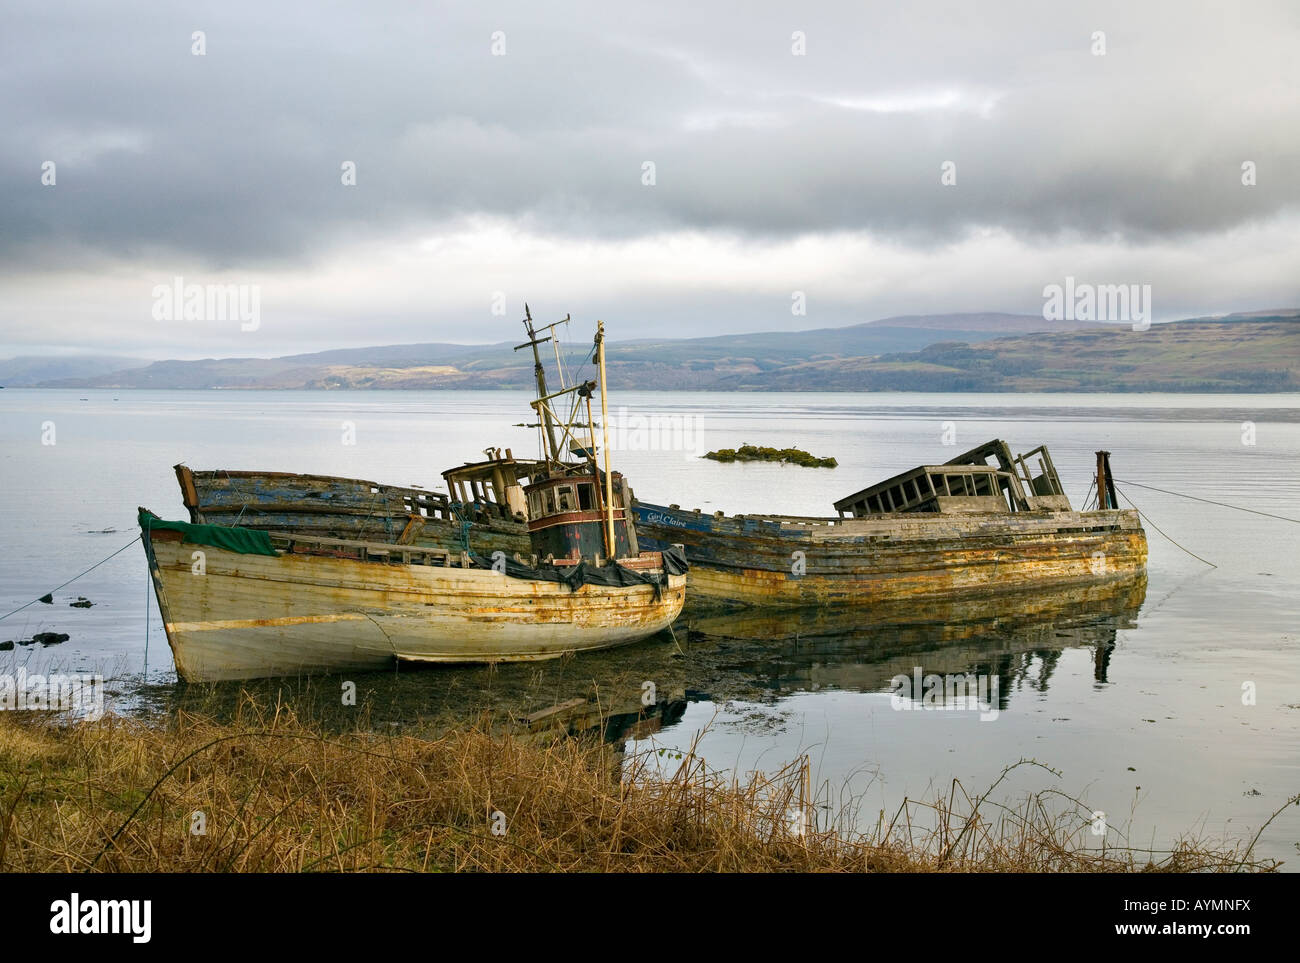 Two beached, Wrecked & Abandoned old wooden fishing boats on the beach at Salen, Isle of Mull, Argyll, Scotland Stock Photo